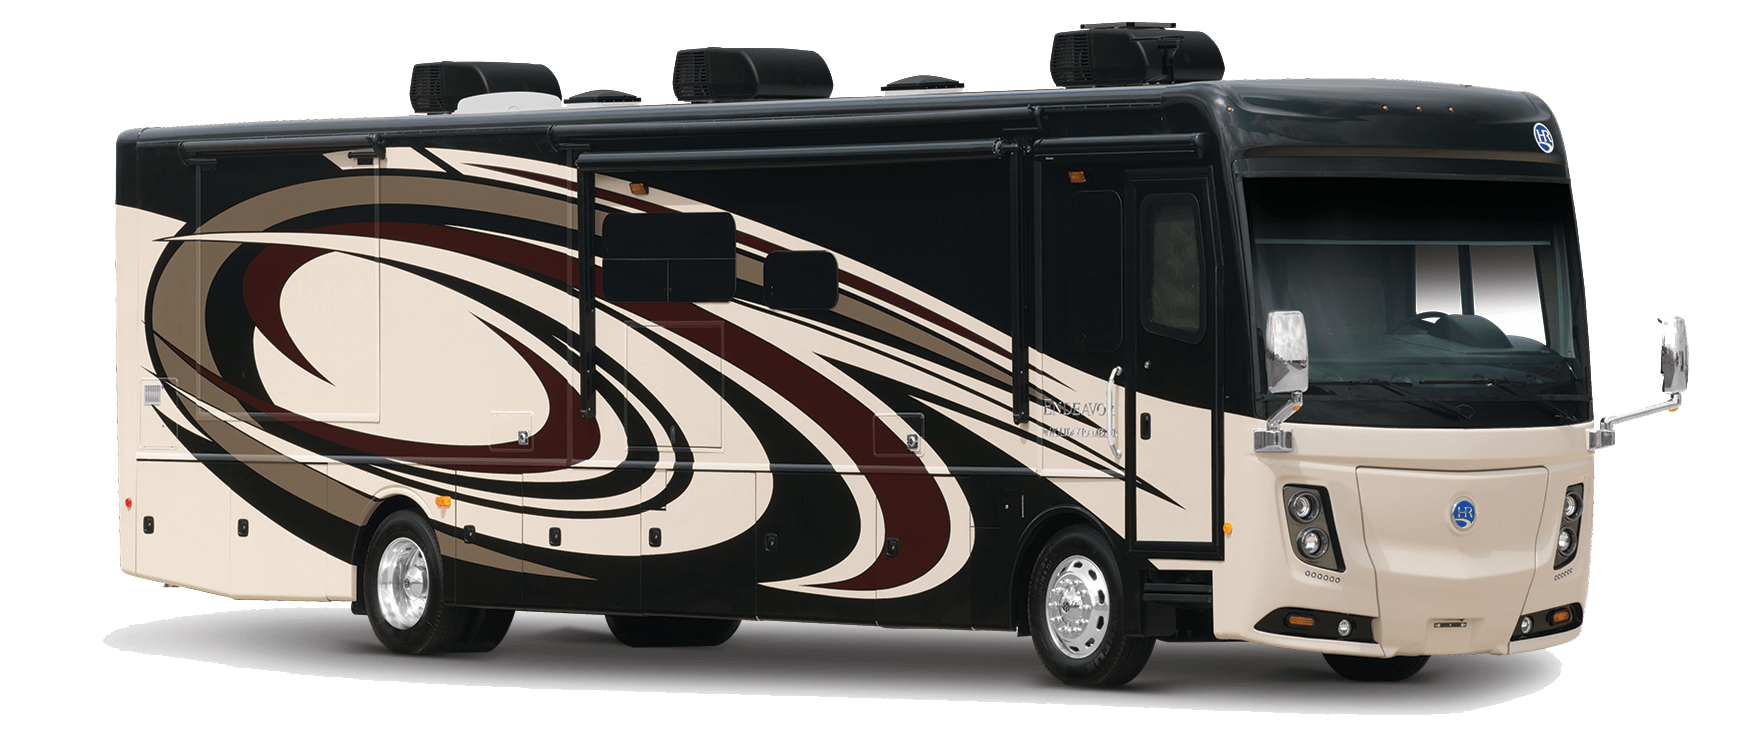 holiday rambler endeavor.pagespeed.ce.YWoc3Dv6W2 holiday rambler endeavor general rv center Holiday Rambler Schematics at webbmarketing.co